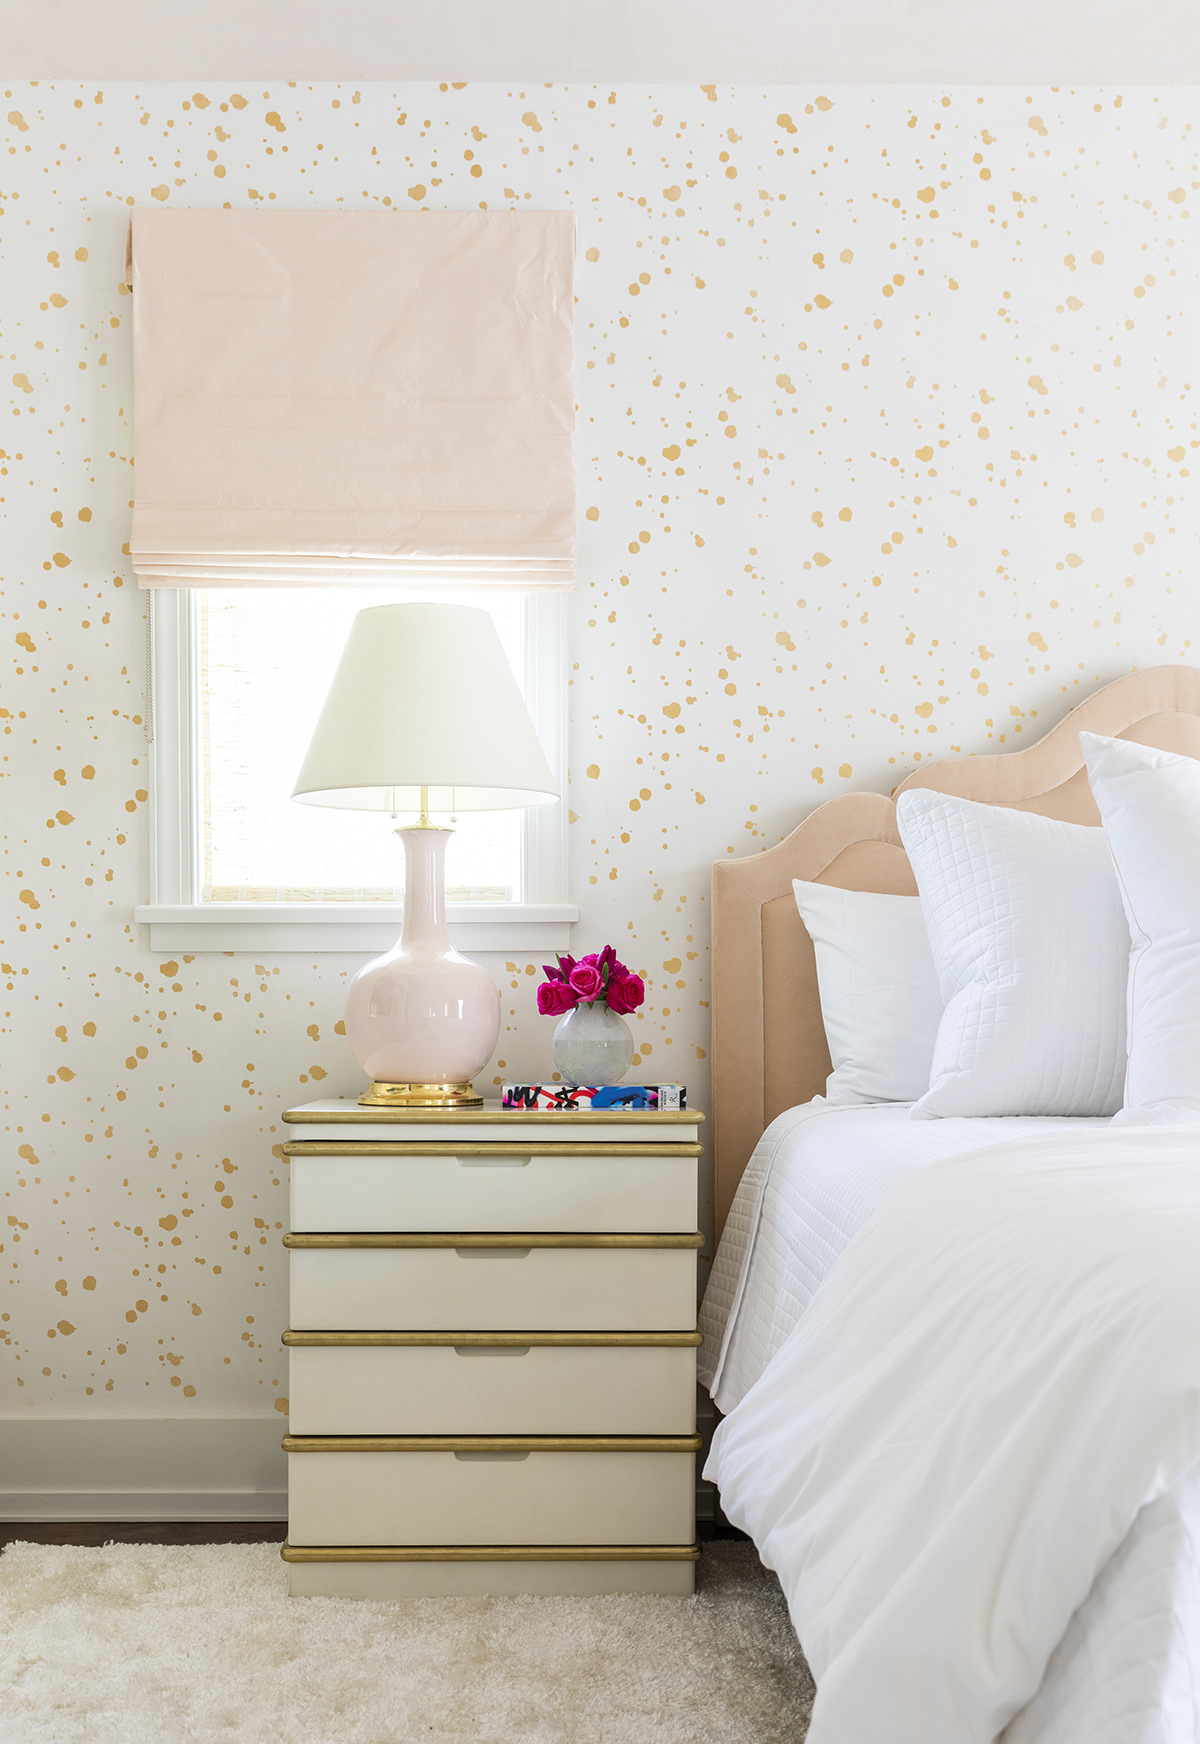 pink and gold bedroom with view of nightstand